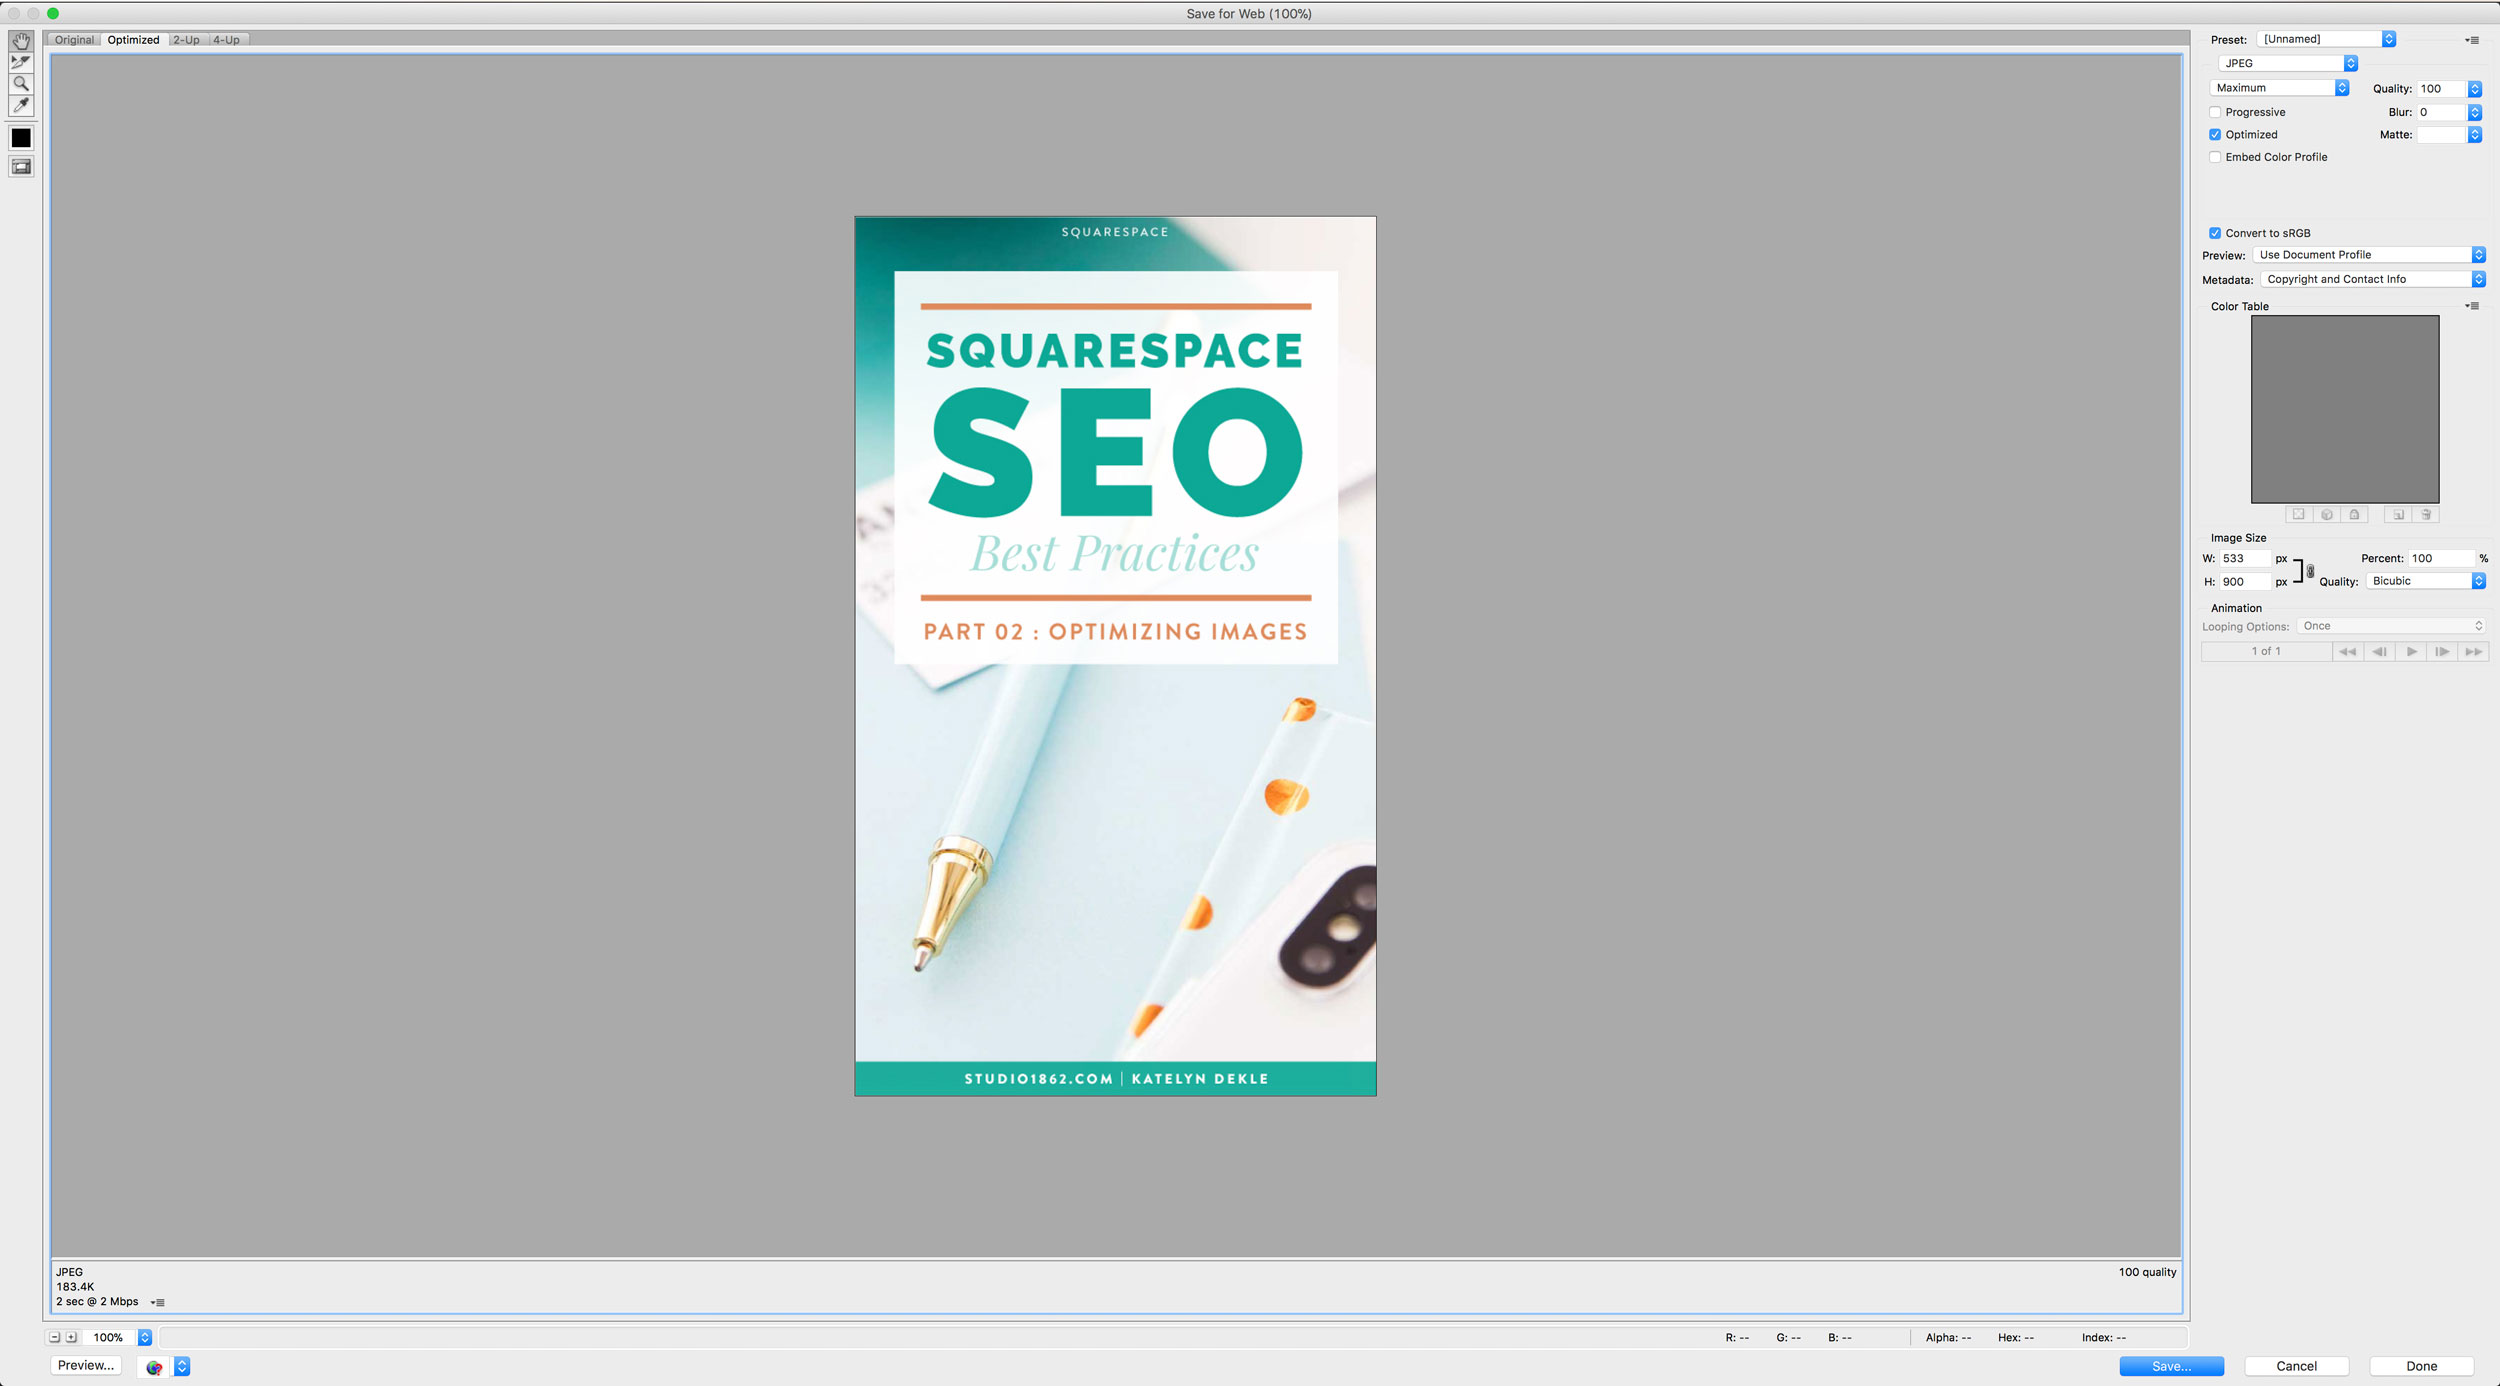 S1862_Squarespace-How-to-Optimize-Images-Using-Preview_Screenshot_SaveForWebOptionsPhotoshop.png